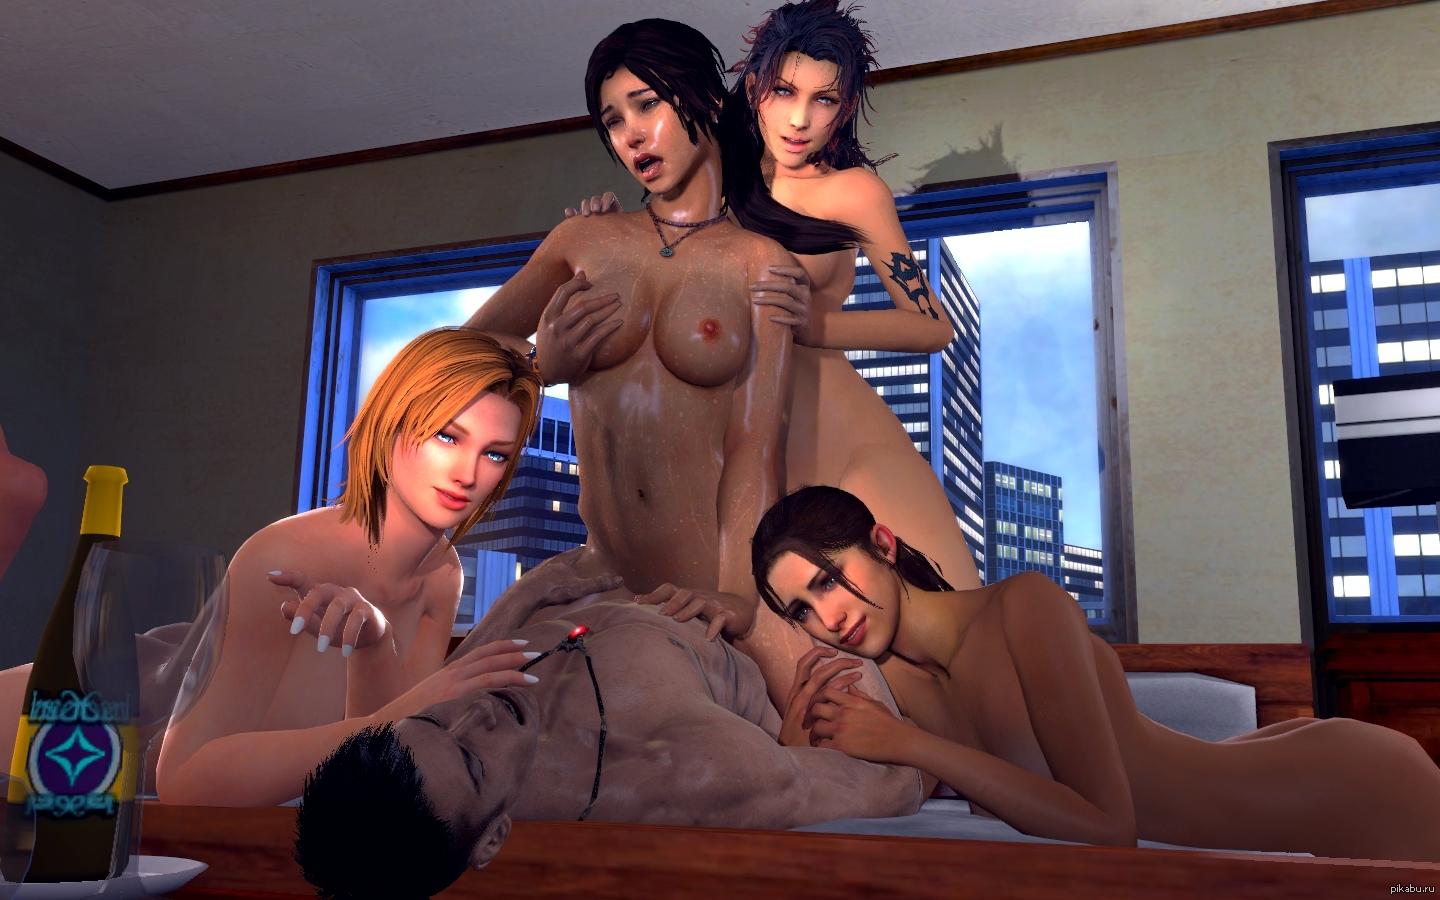 Lara croft gets fucked erotica photos